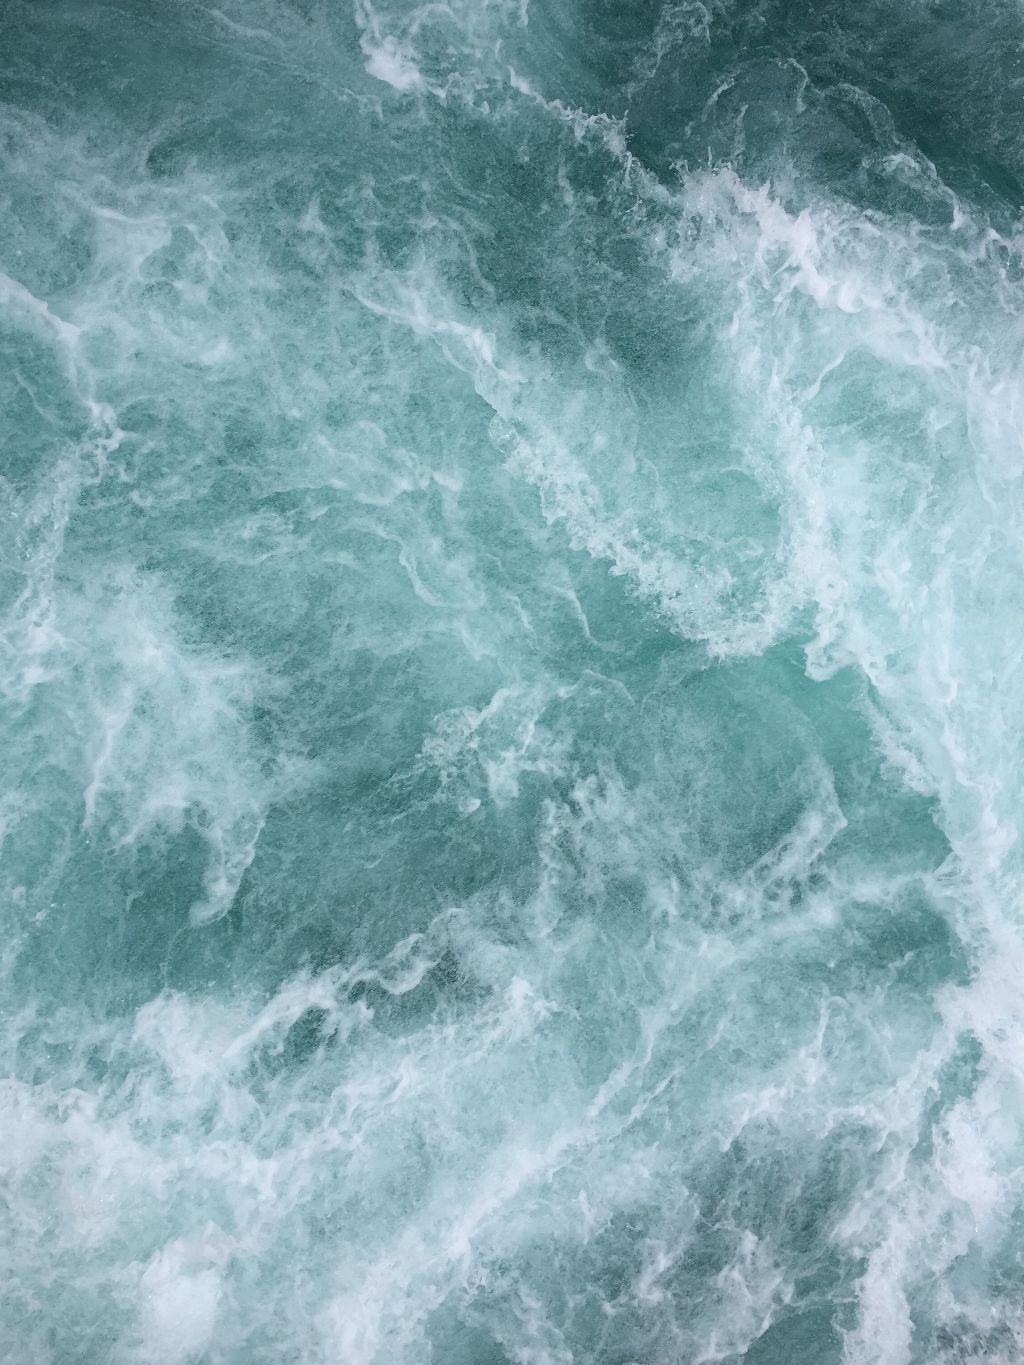 Put yourself onto this awesome background! Unsplash (Public Domain) #water #background #backgrounds #freetoedit